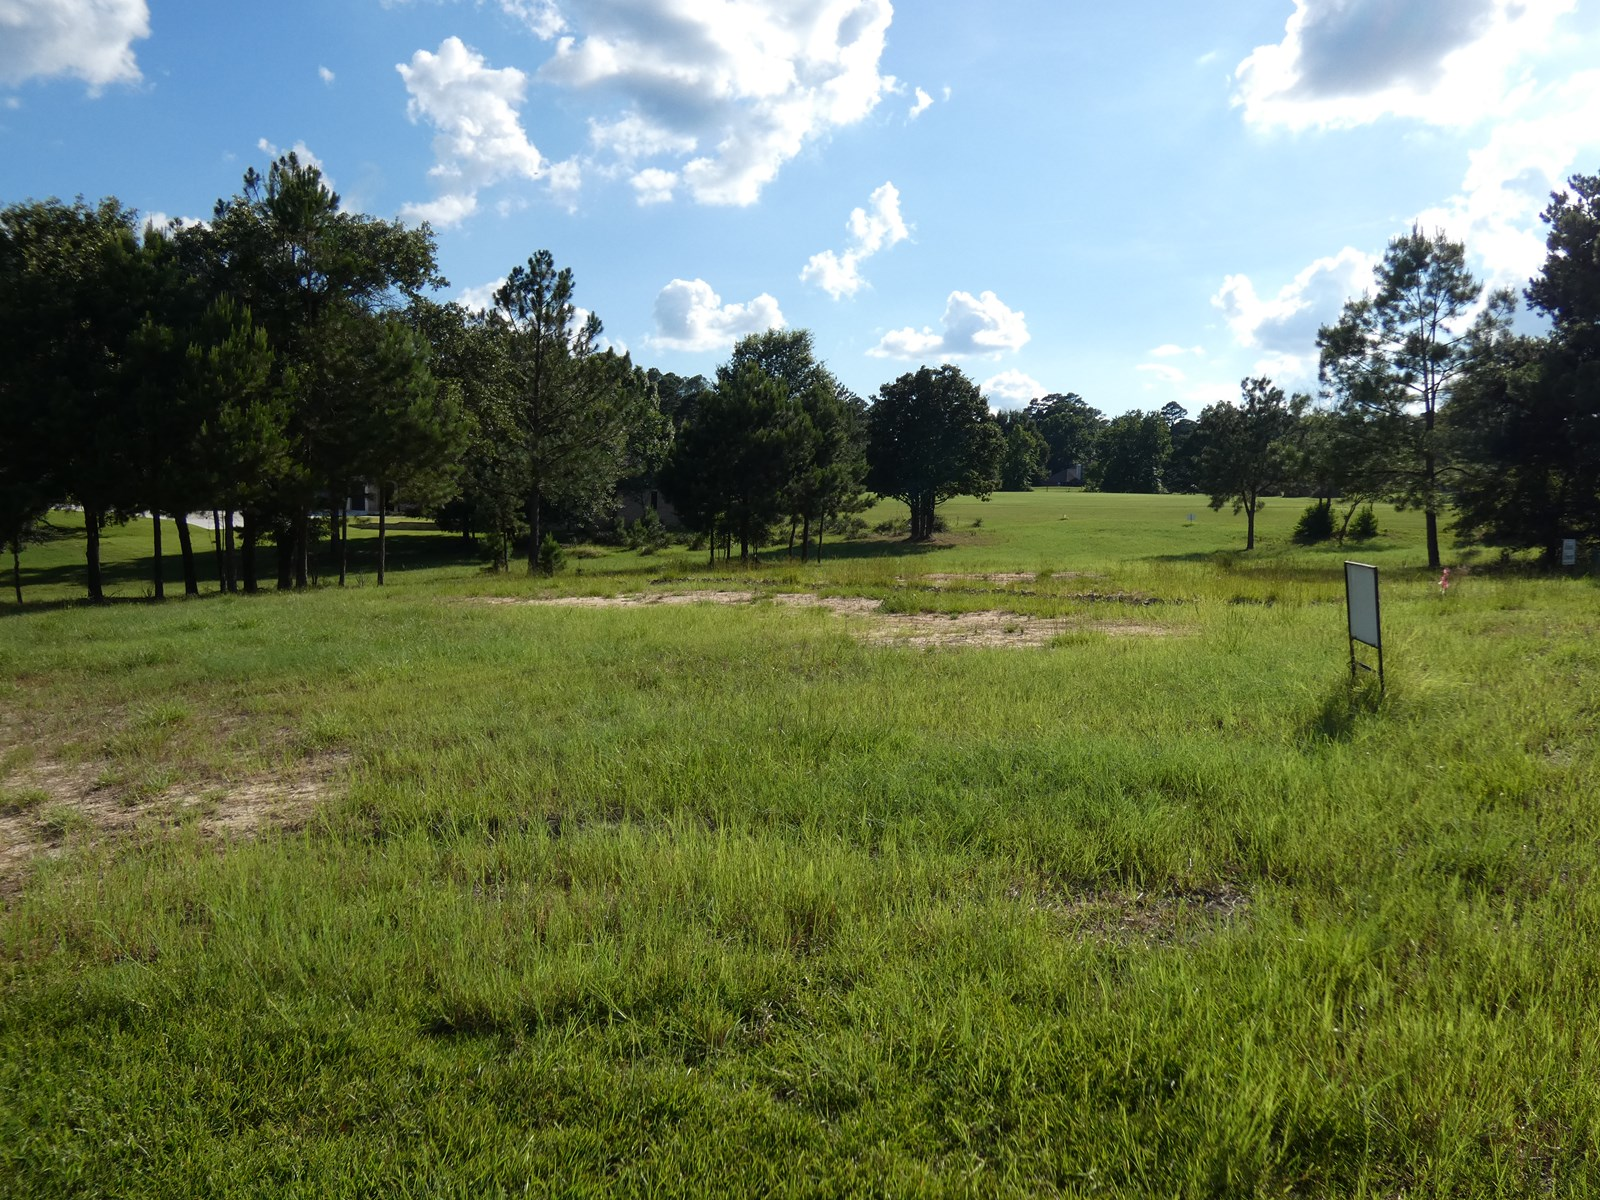 HOLLY LAKE RANCH, TX GOLF COURSE LOT EAST TEXAS WOOD COUNTY